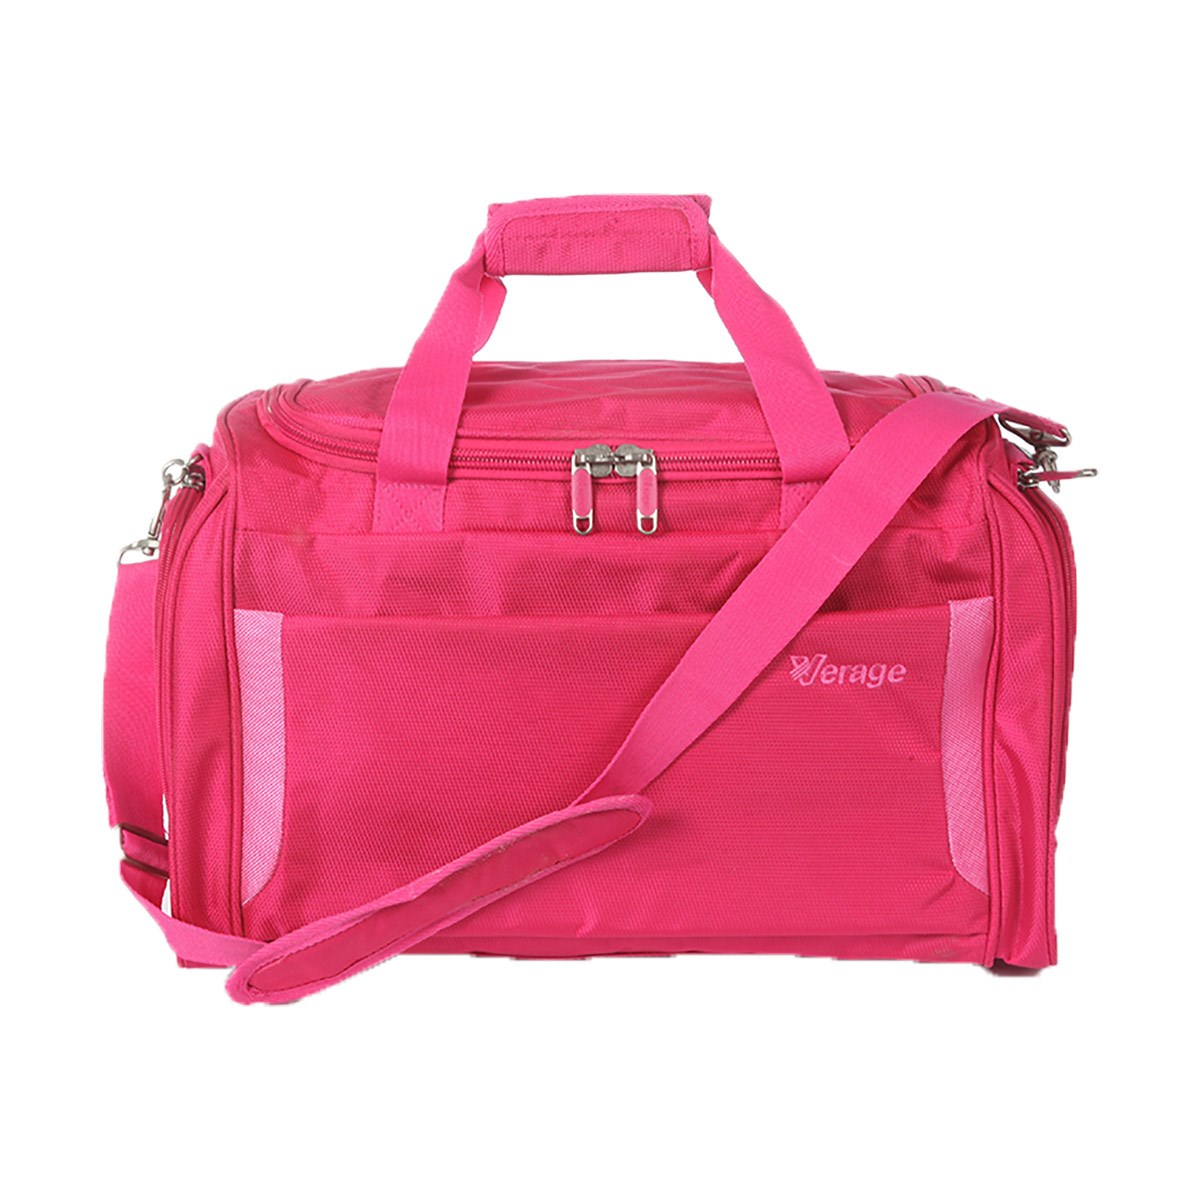 Travel Bag Verage GM11015-4A 16 Pink 6pcs printed travel storage bag